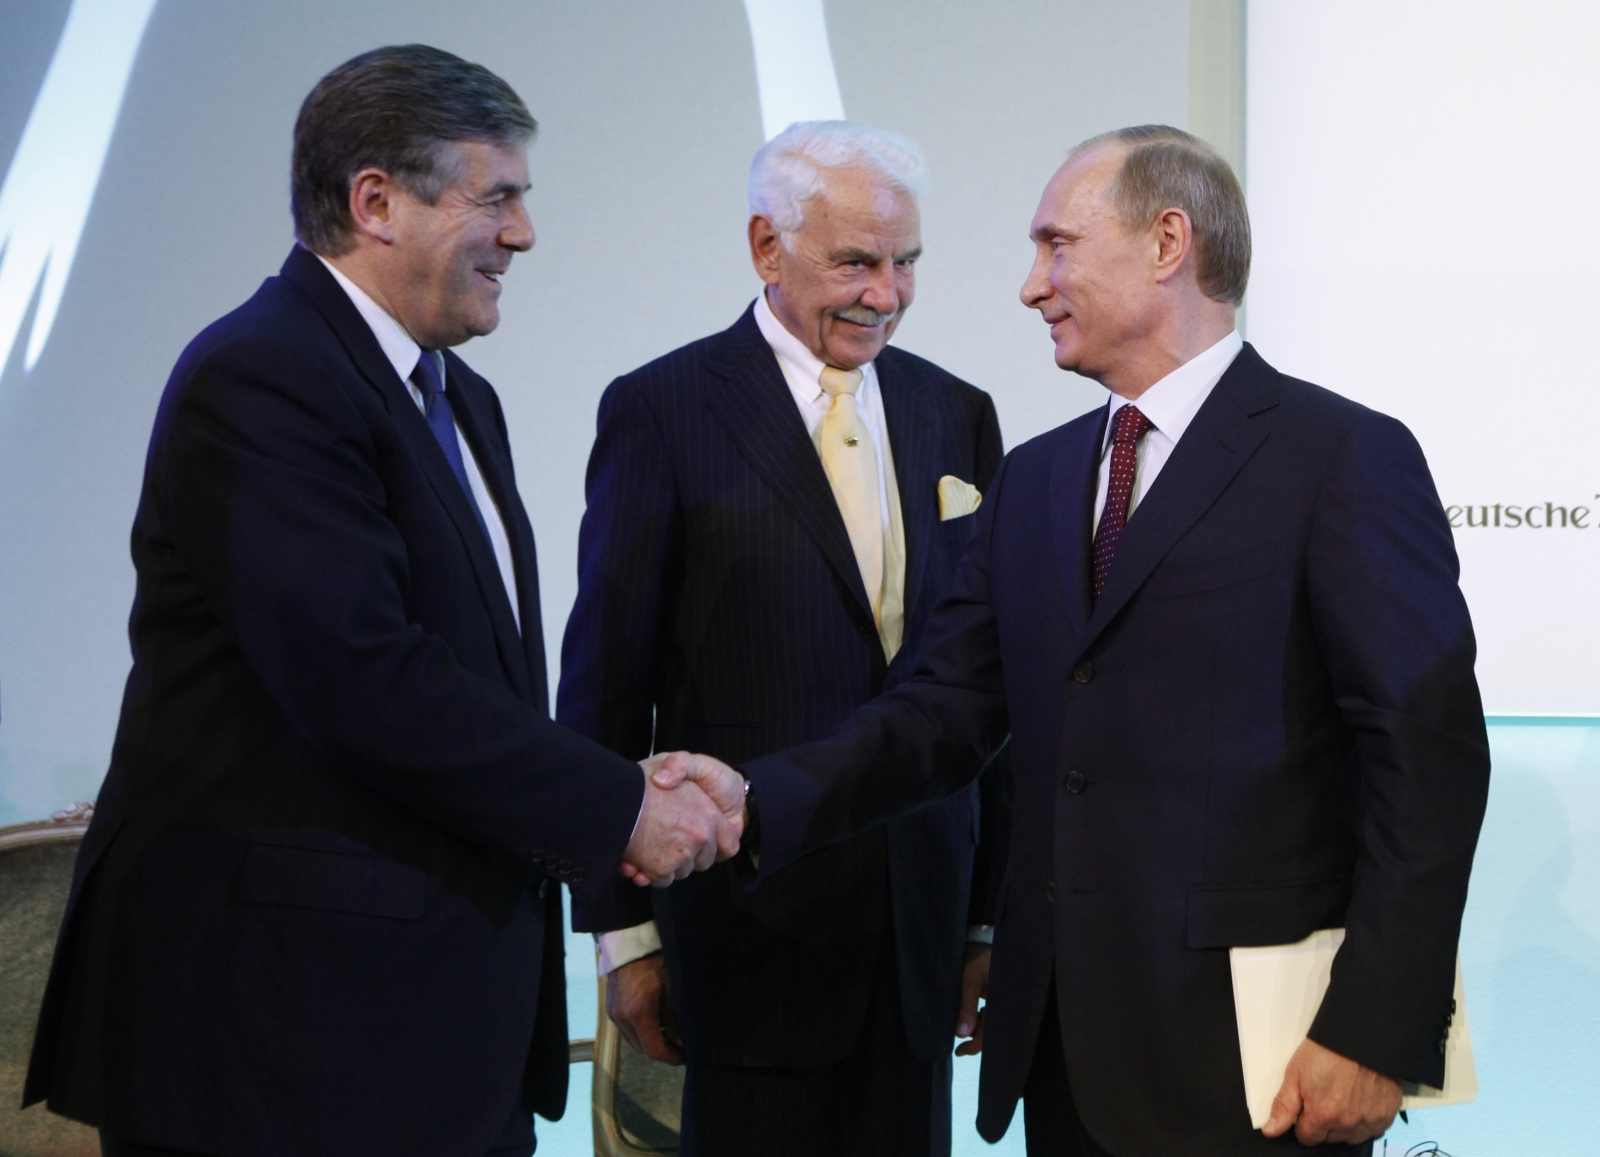 Russian President Vladimir Putin (R) shakes hands with ex-Deutsche Bank Chief Executive Officer Josef Ackermann (L) as the head of Knauf Group Nikolaus Wilhelm Knauf in 2010